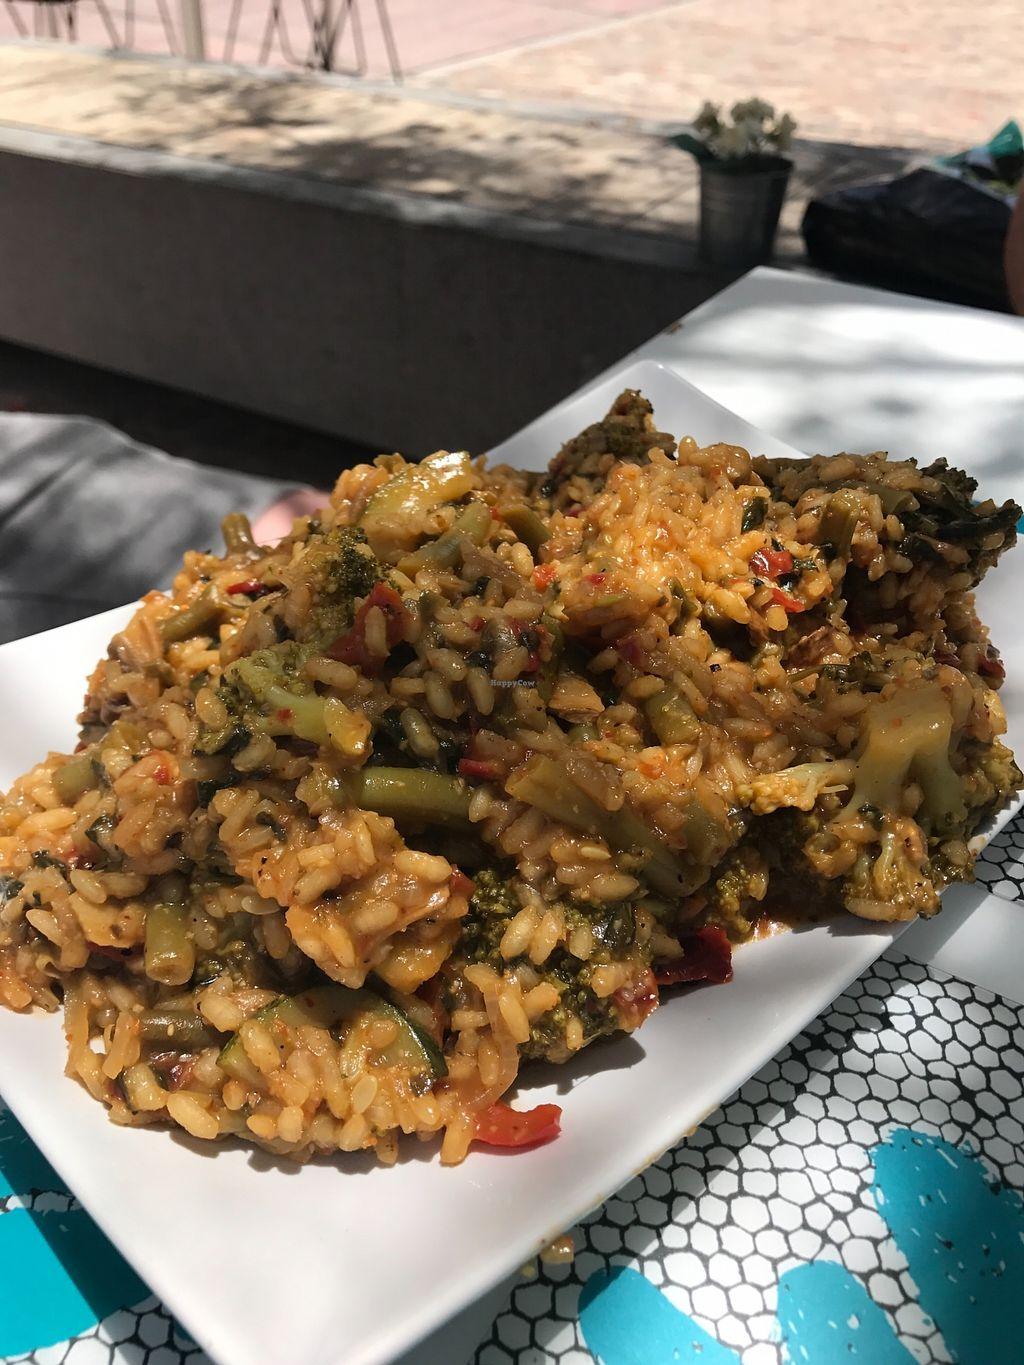 "Photo of Delicias y Namaste  by <a href=""/members/profile/EllisS"">EllisS</a> <br/>Vegetable paella  <br/> July 30, 2017  - <a href='/contact/abuse/image/80824/286584'>Report</a>"